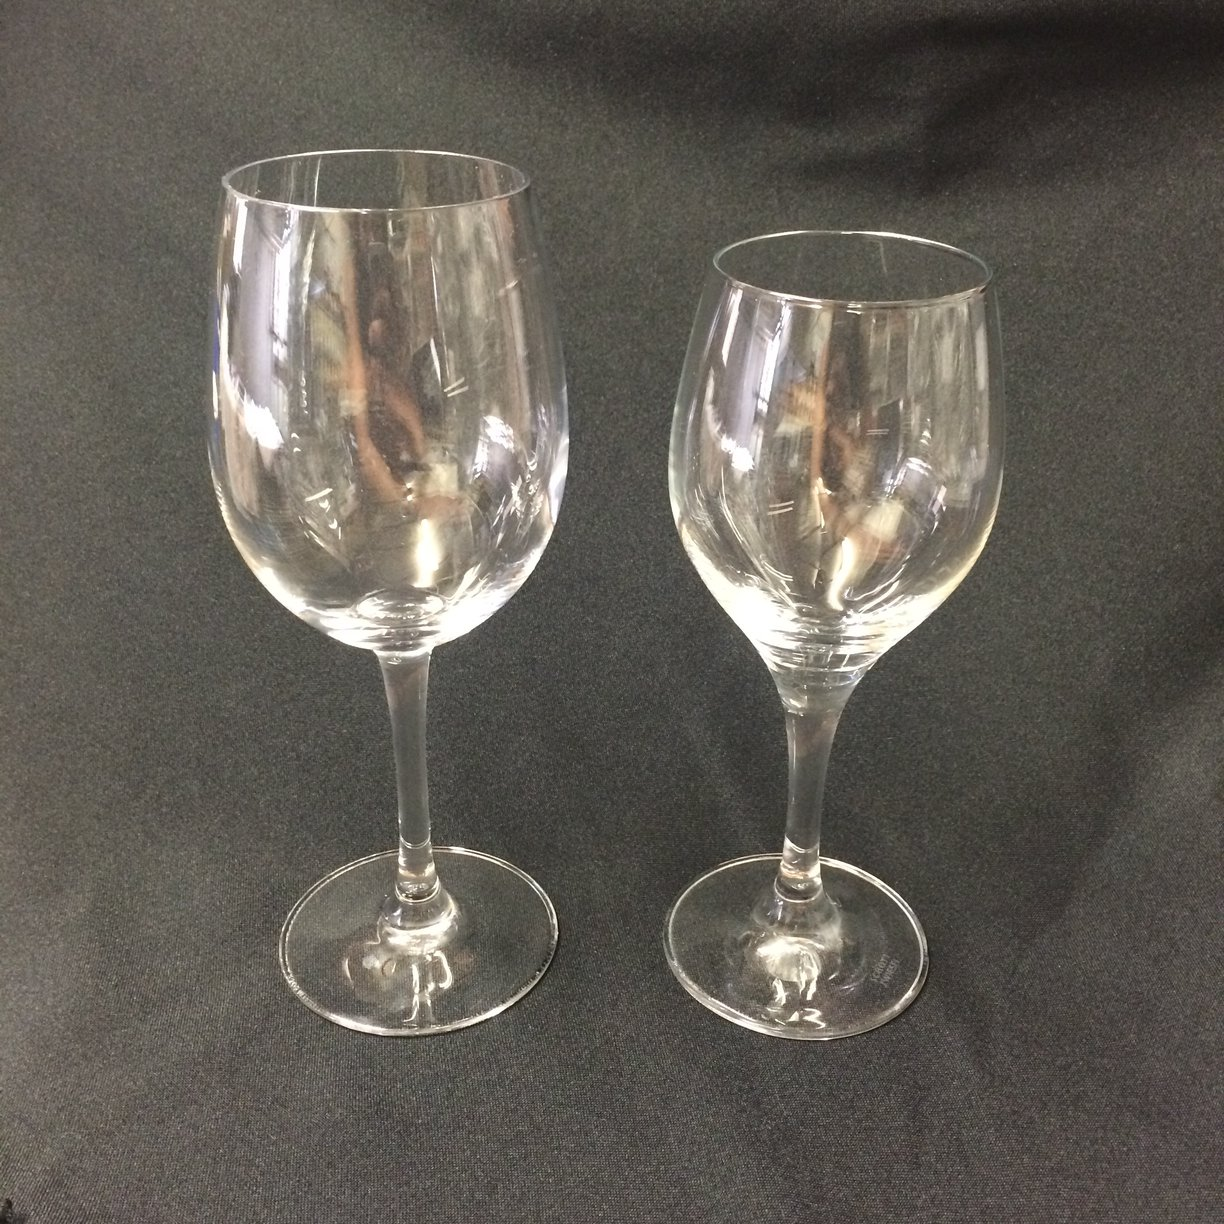 Red & White Wine Glasses Hire in Northern Beaches